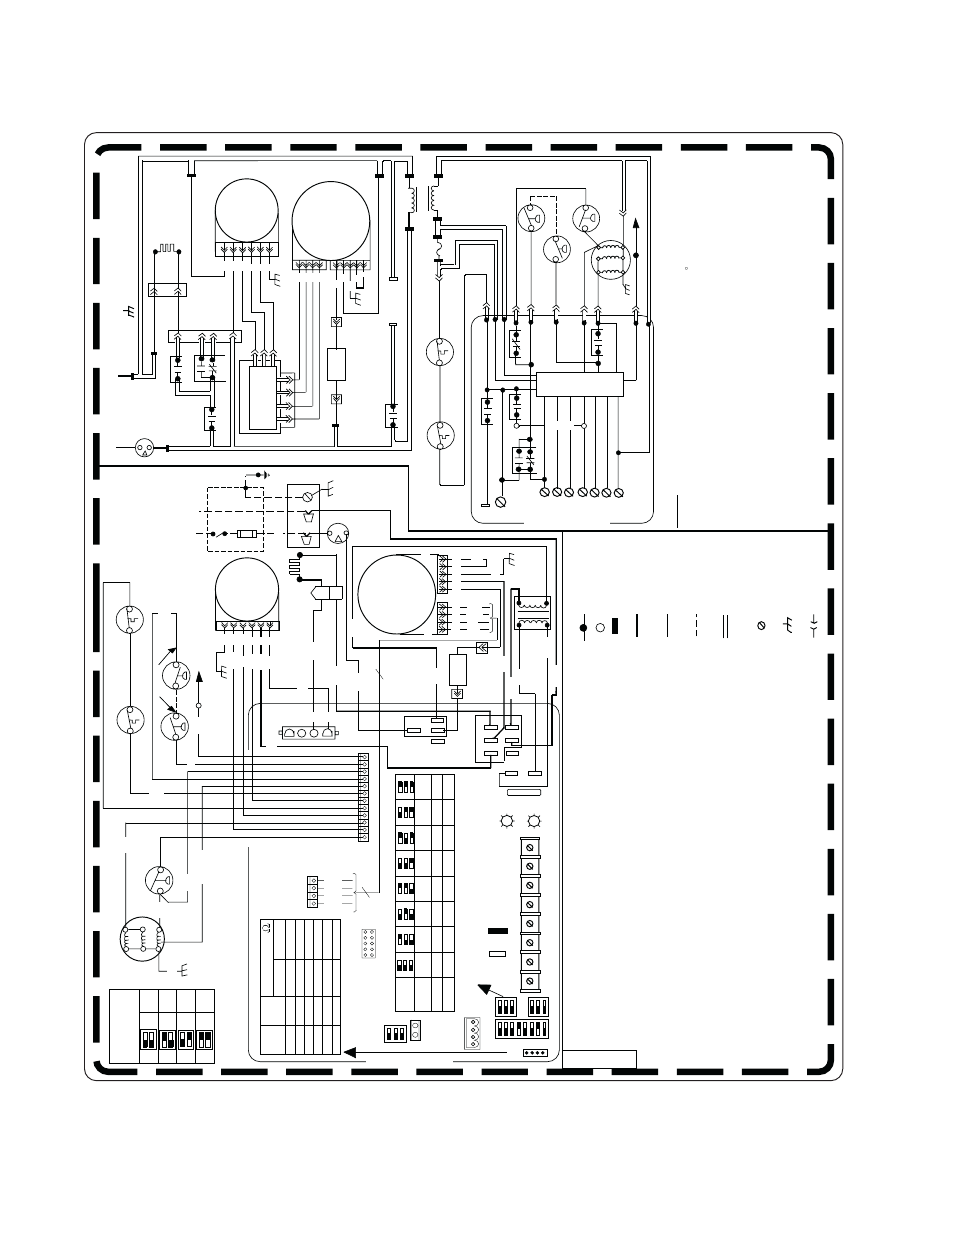 hight resolution of bryant wiring diagram wire management u0026 wiring diagram bryant air conditioner wiring diagram fig 18